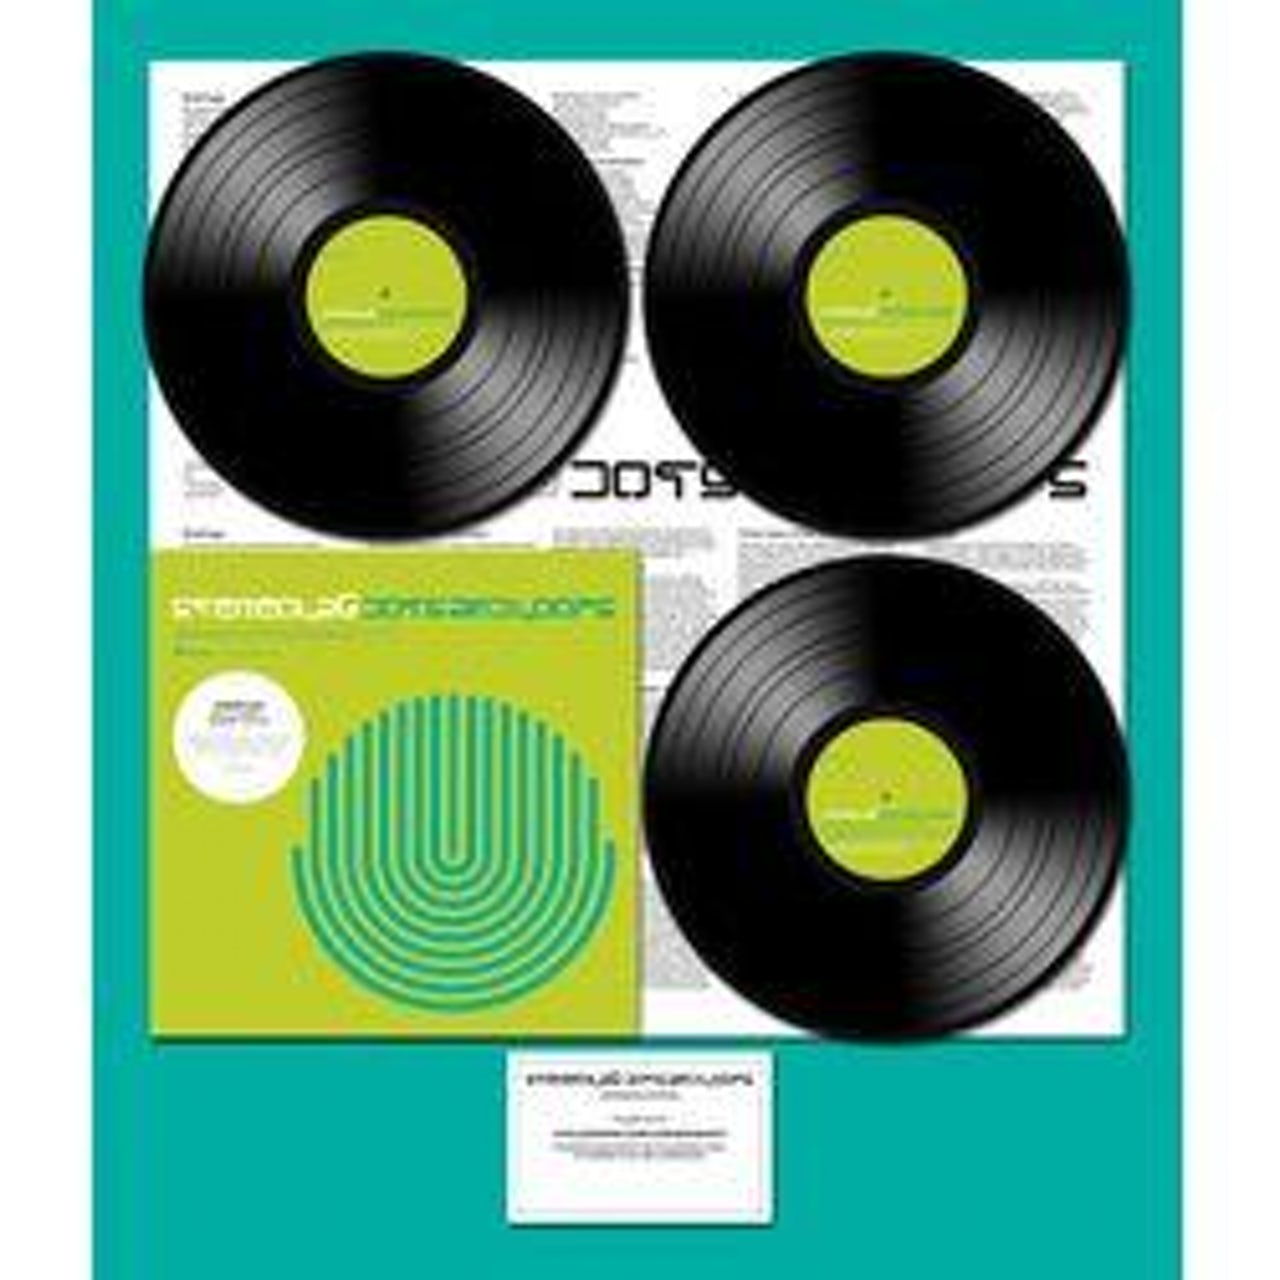 Stereolab Dots Amp Loops Extended Edition 2019 Vinyl Reissue